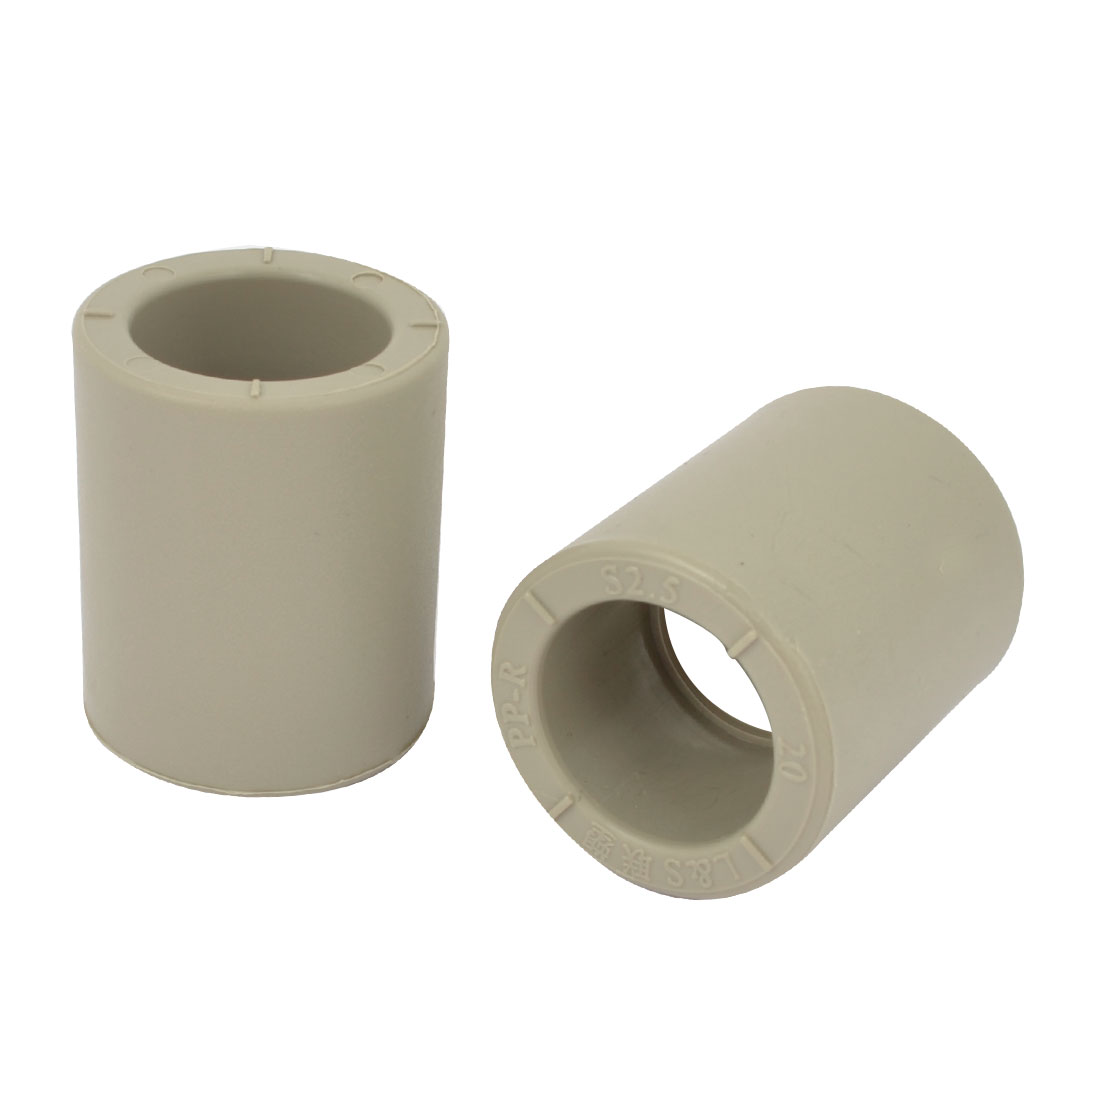 2-Pcs-Gray-PVC-20mm-Inner-Diameter-Straight-Pipe-Tube-Connector